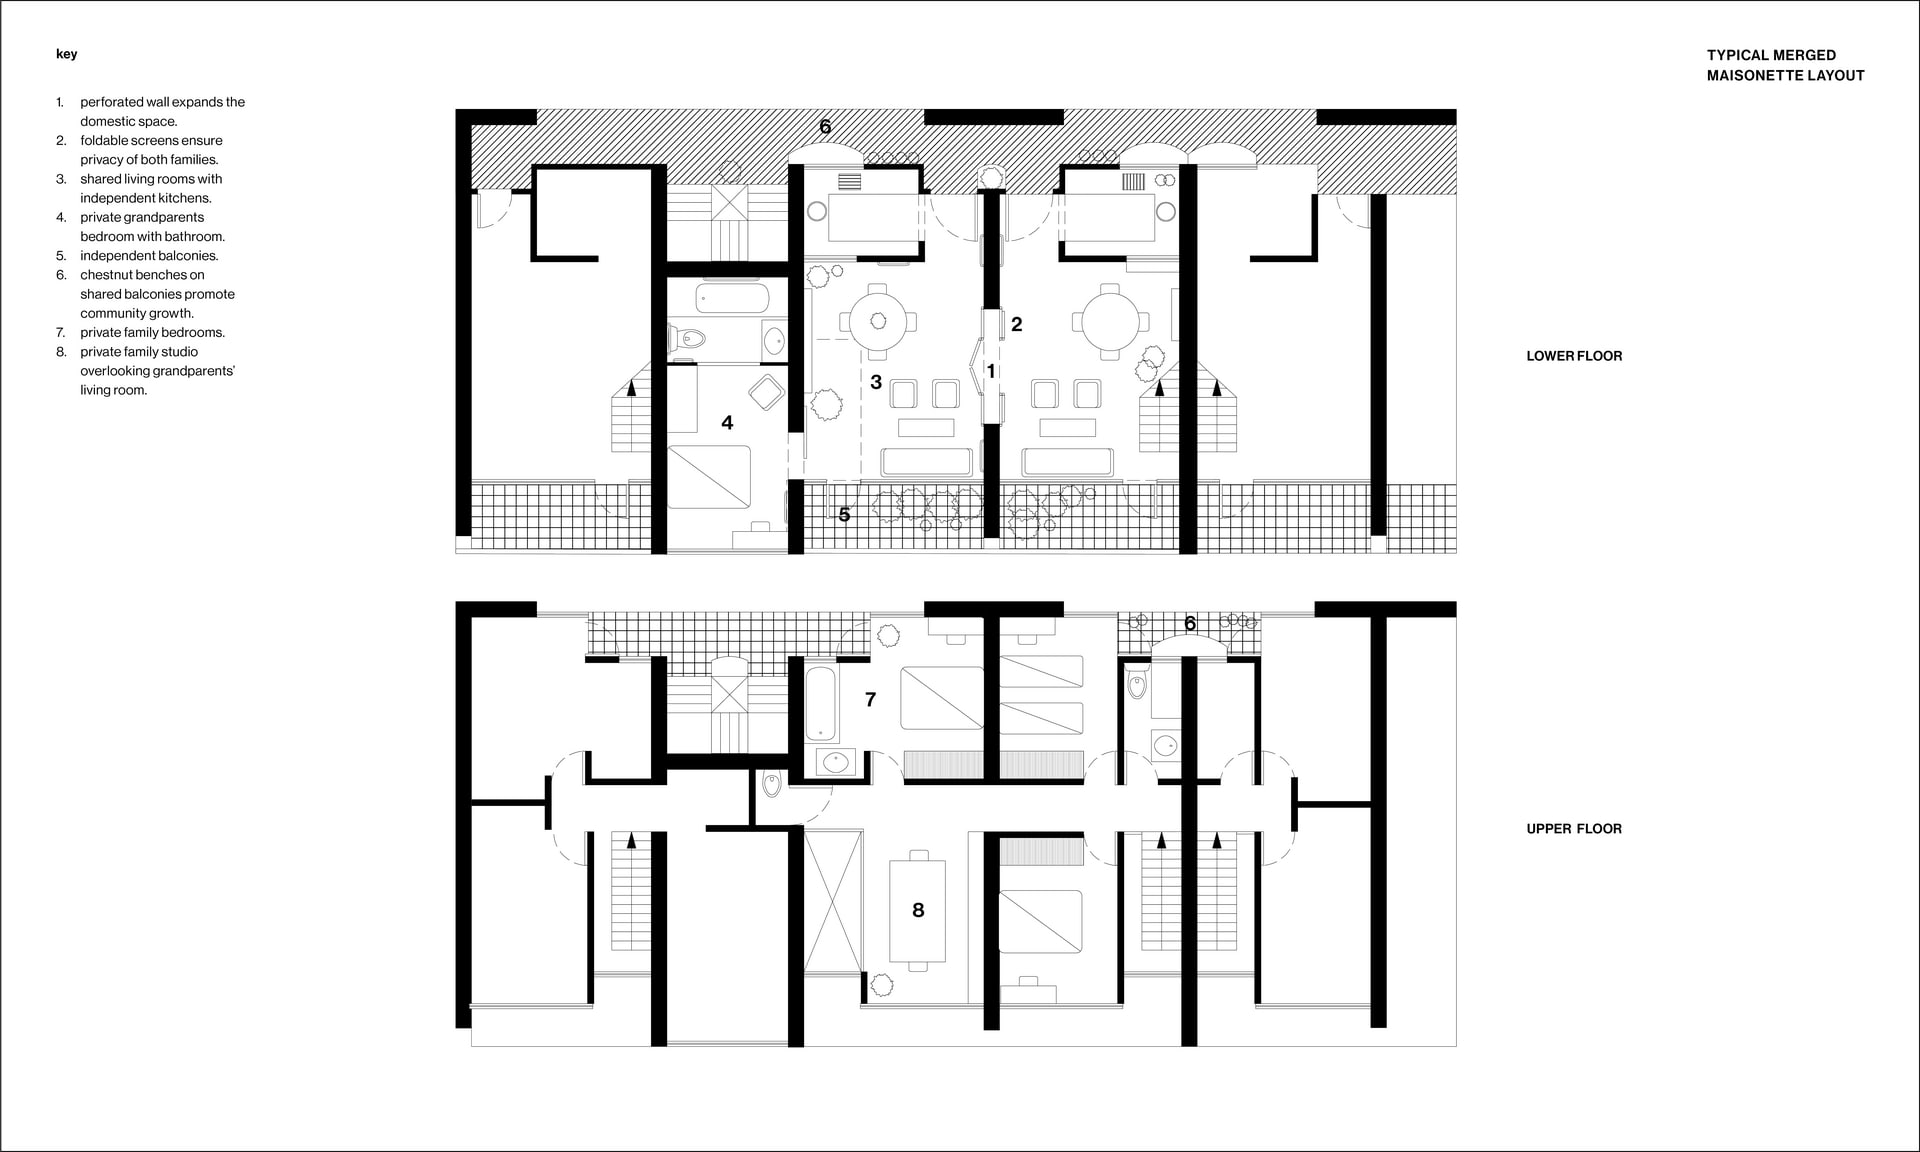 Maisonettes: Typical Merged Layout - Digital drawing